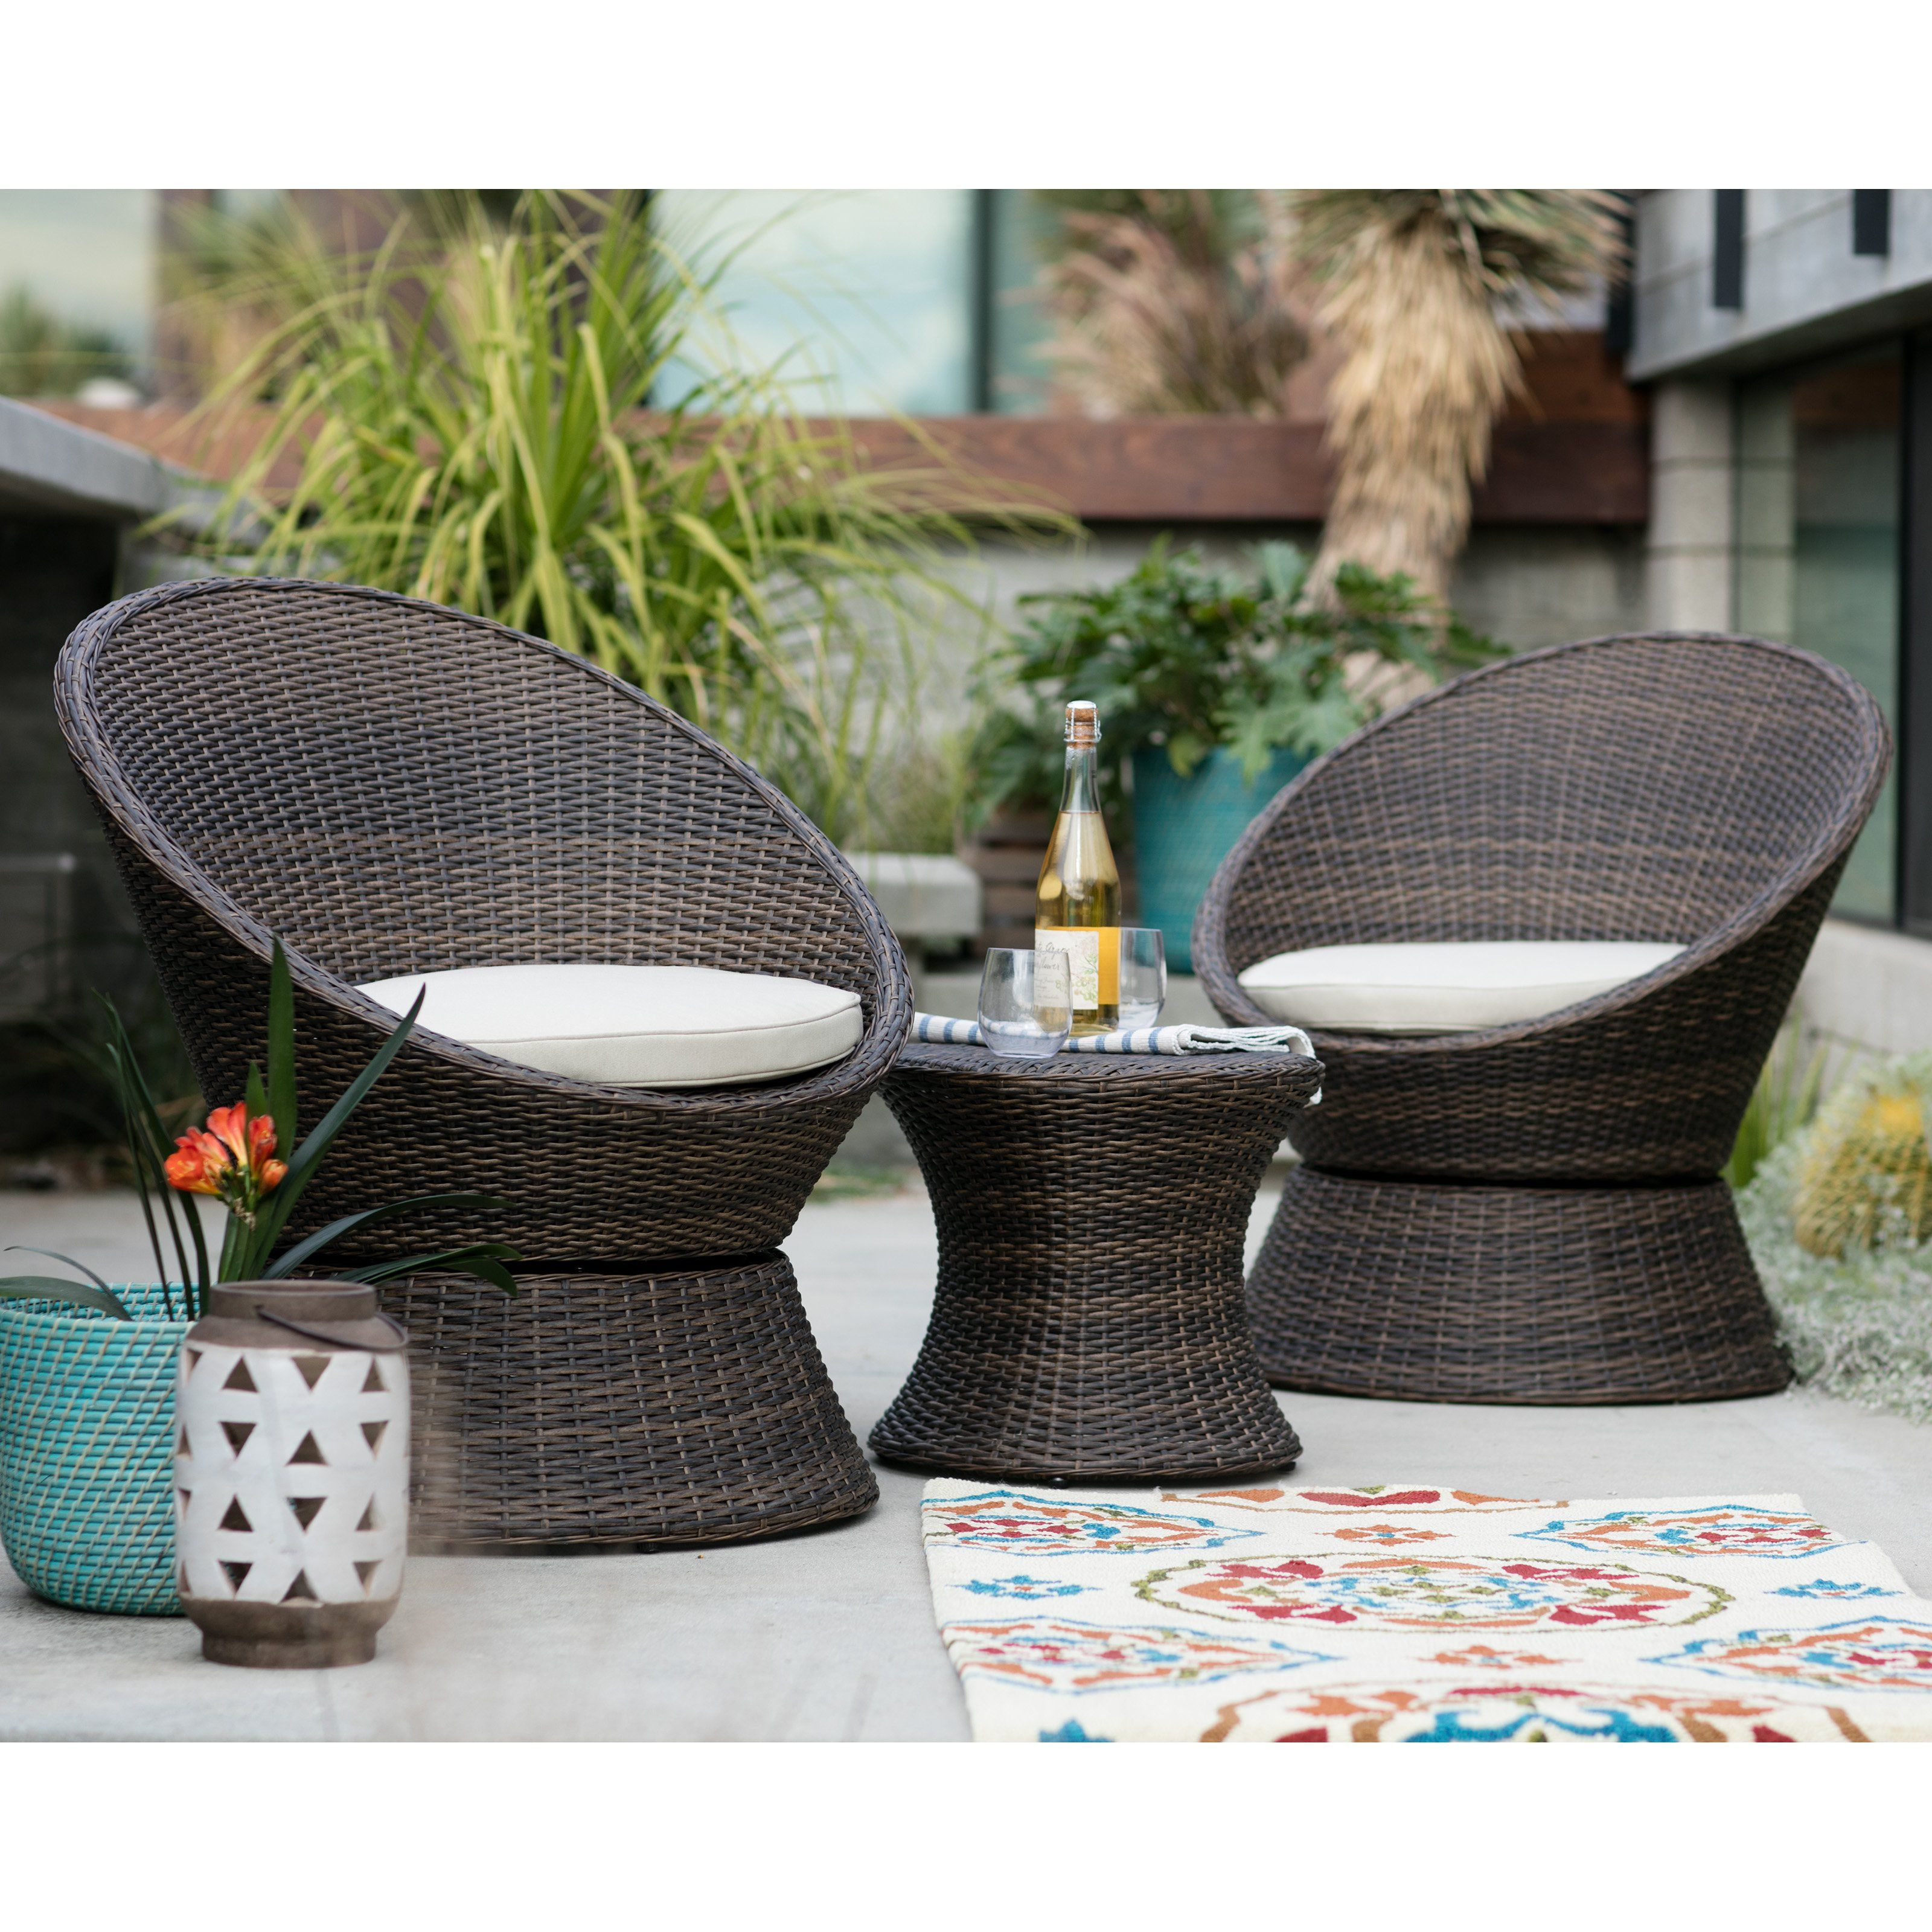 Coral Coast Laynee All Weather Wicker 3 Piece Patio Swivel Chairs